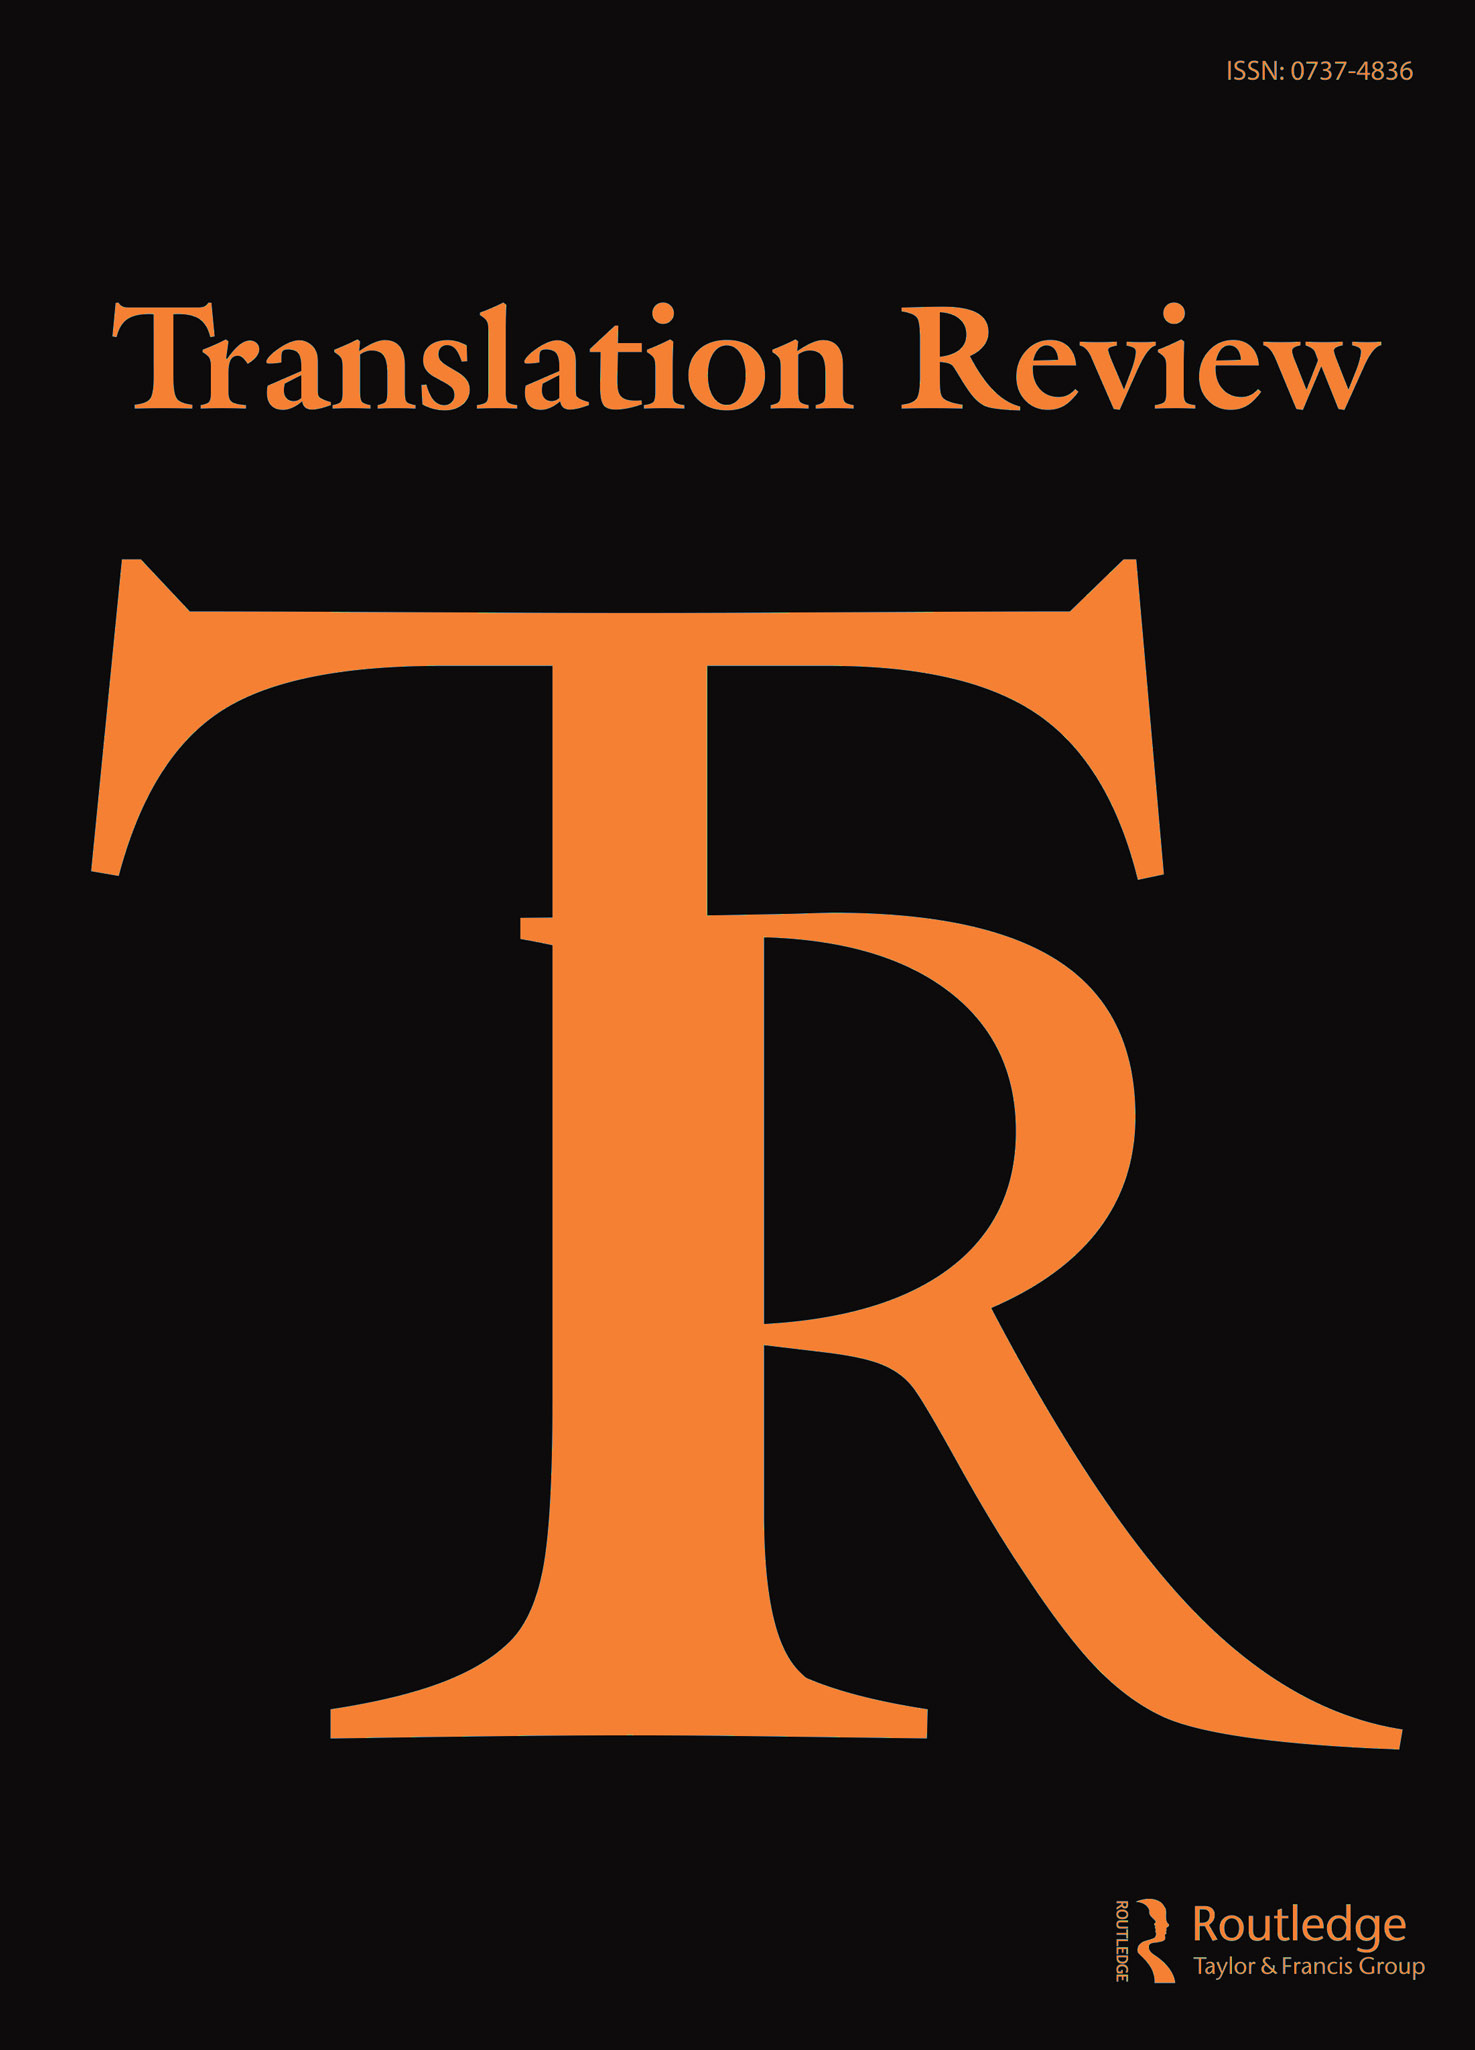 Latest Issue of Translation Review